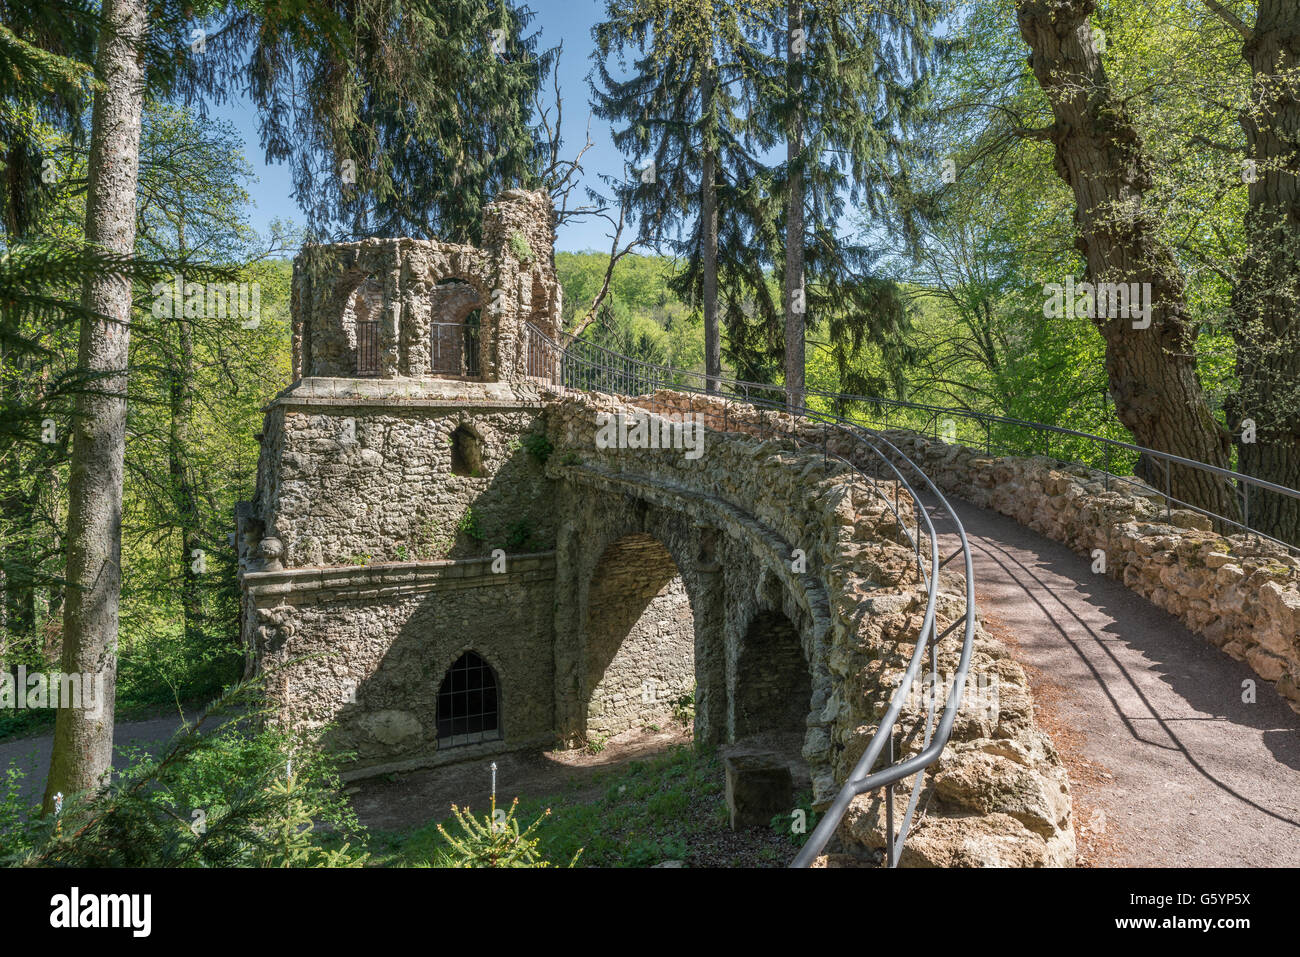 Artificial ruin, Palace Garden Belvedere, Weimar, Thuringia, Germany - Stock Image